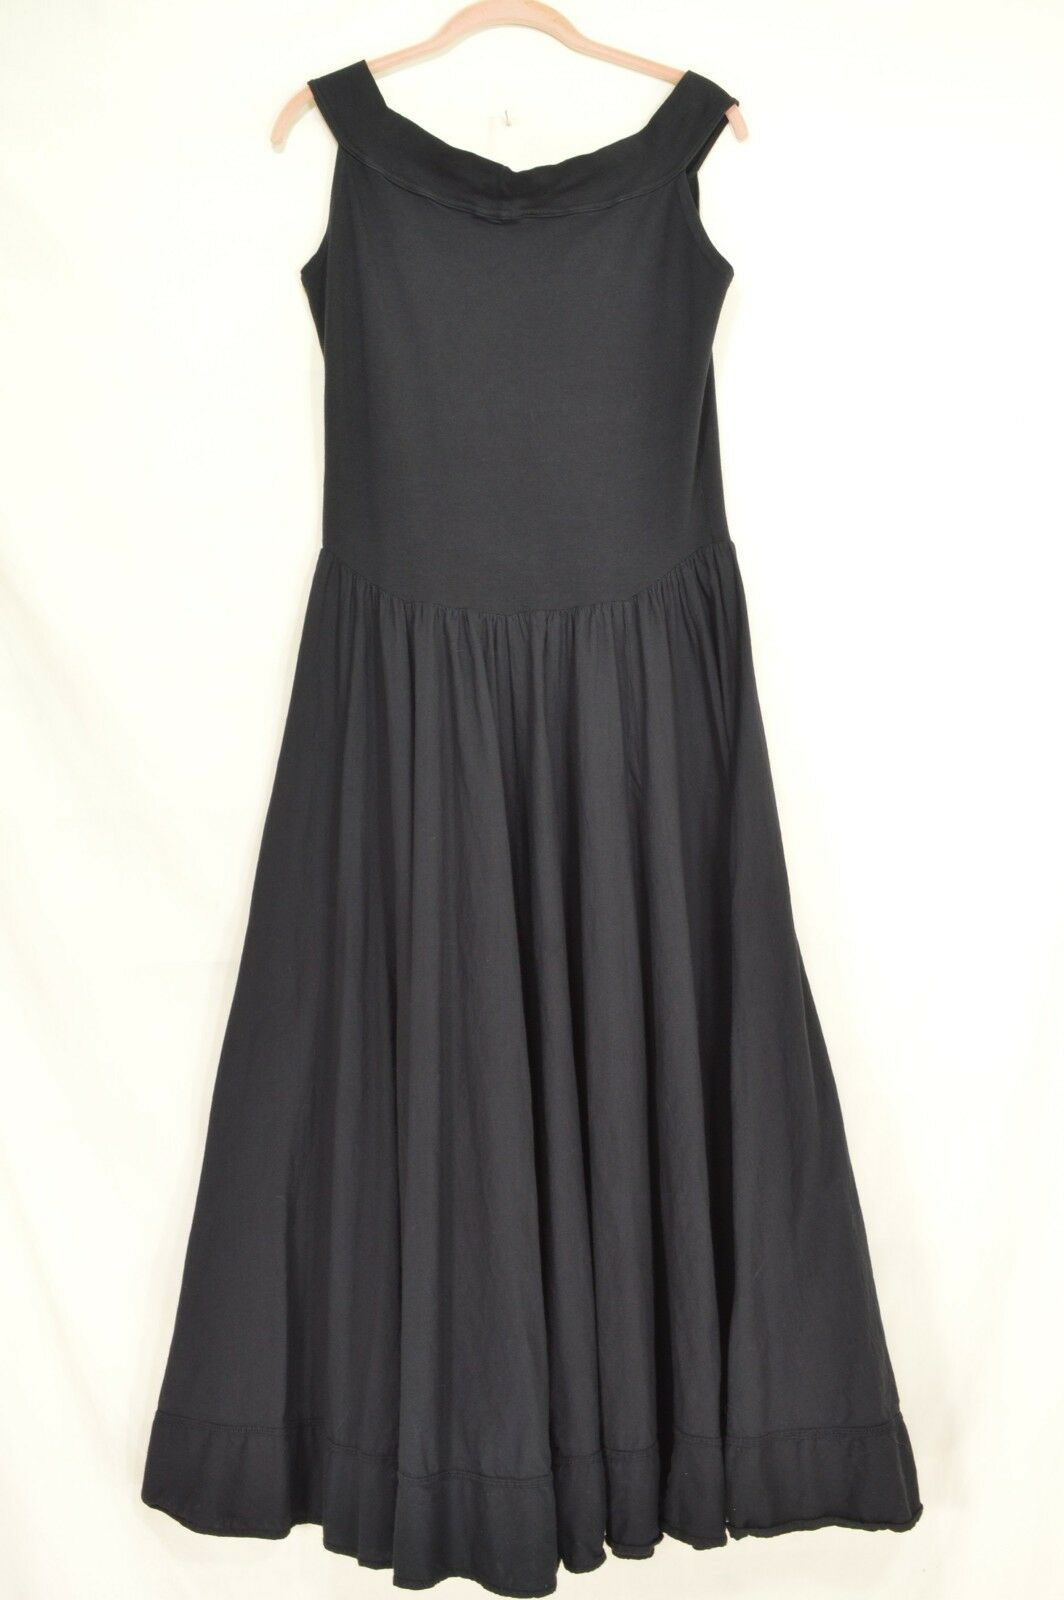 Luna Luz dress L black sleeveless balloon tie up parachute bottom full